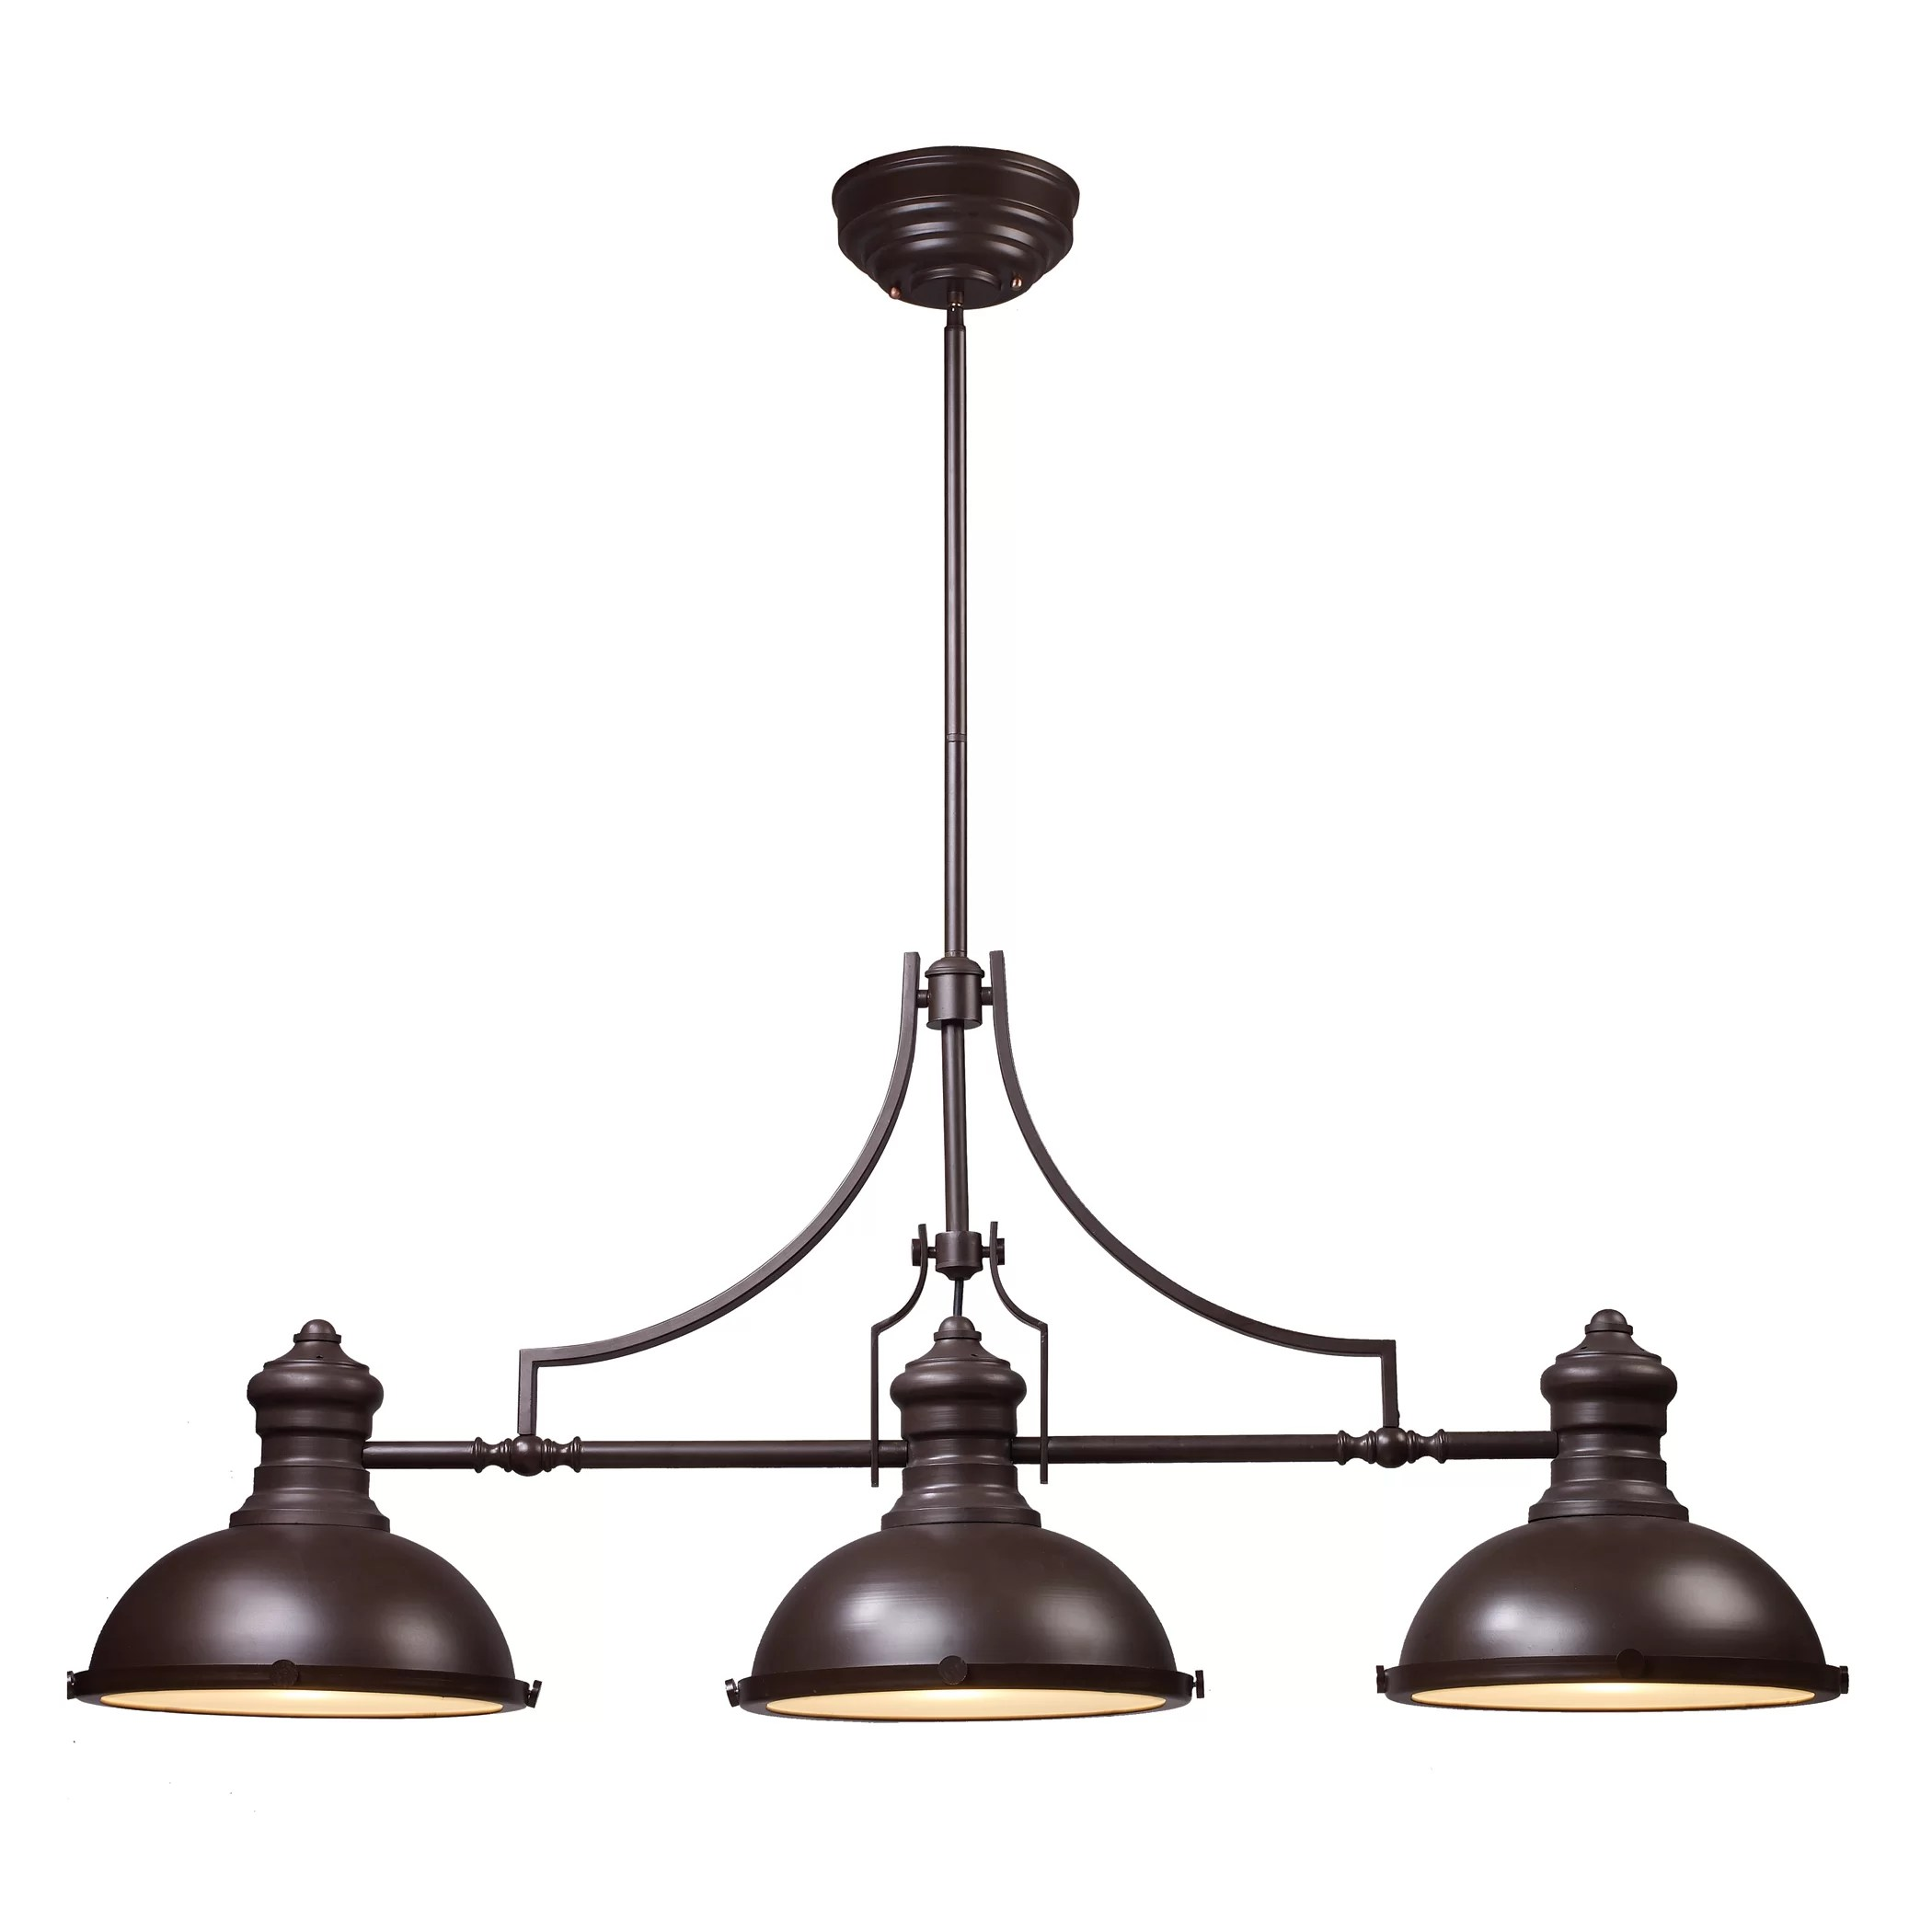 Pendant Island Lights Landmark Lighting Chadwick 3 Light Kitchen Island Pendant